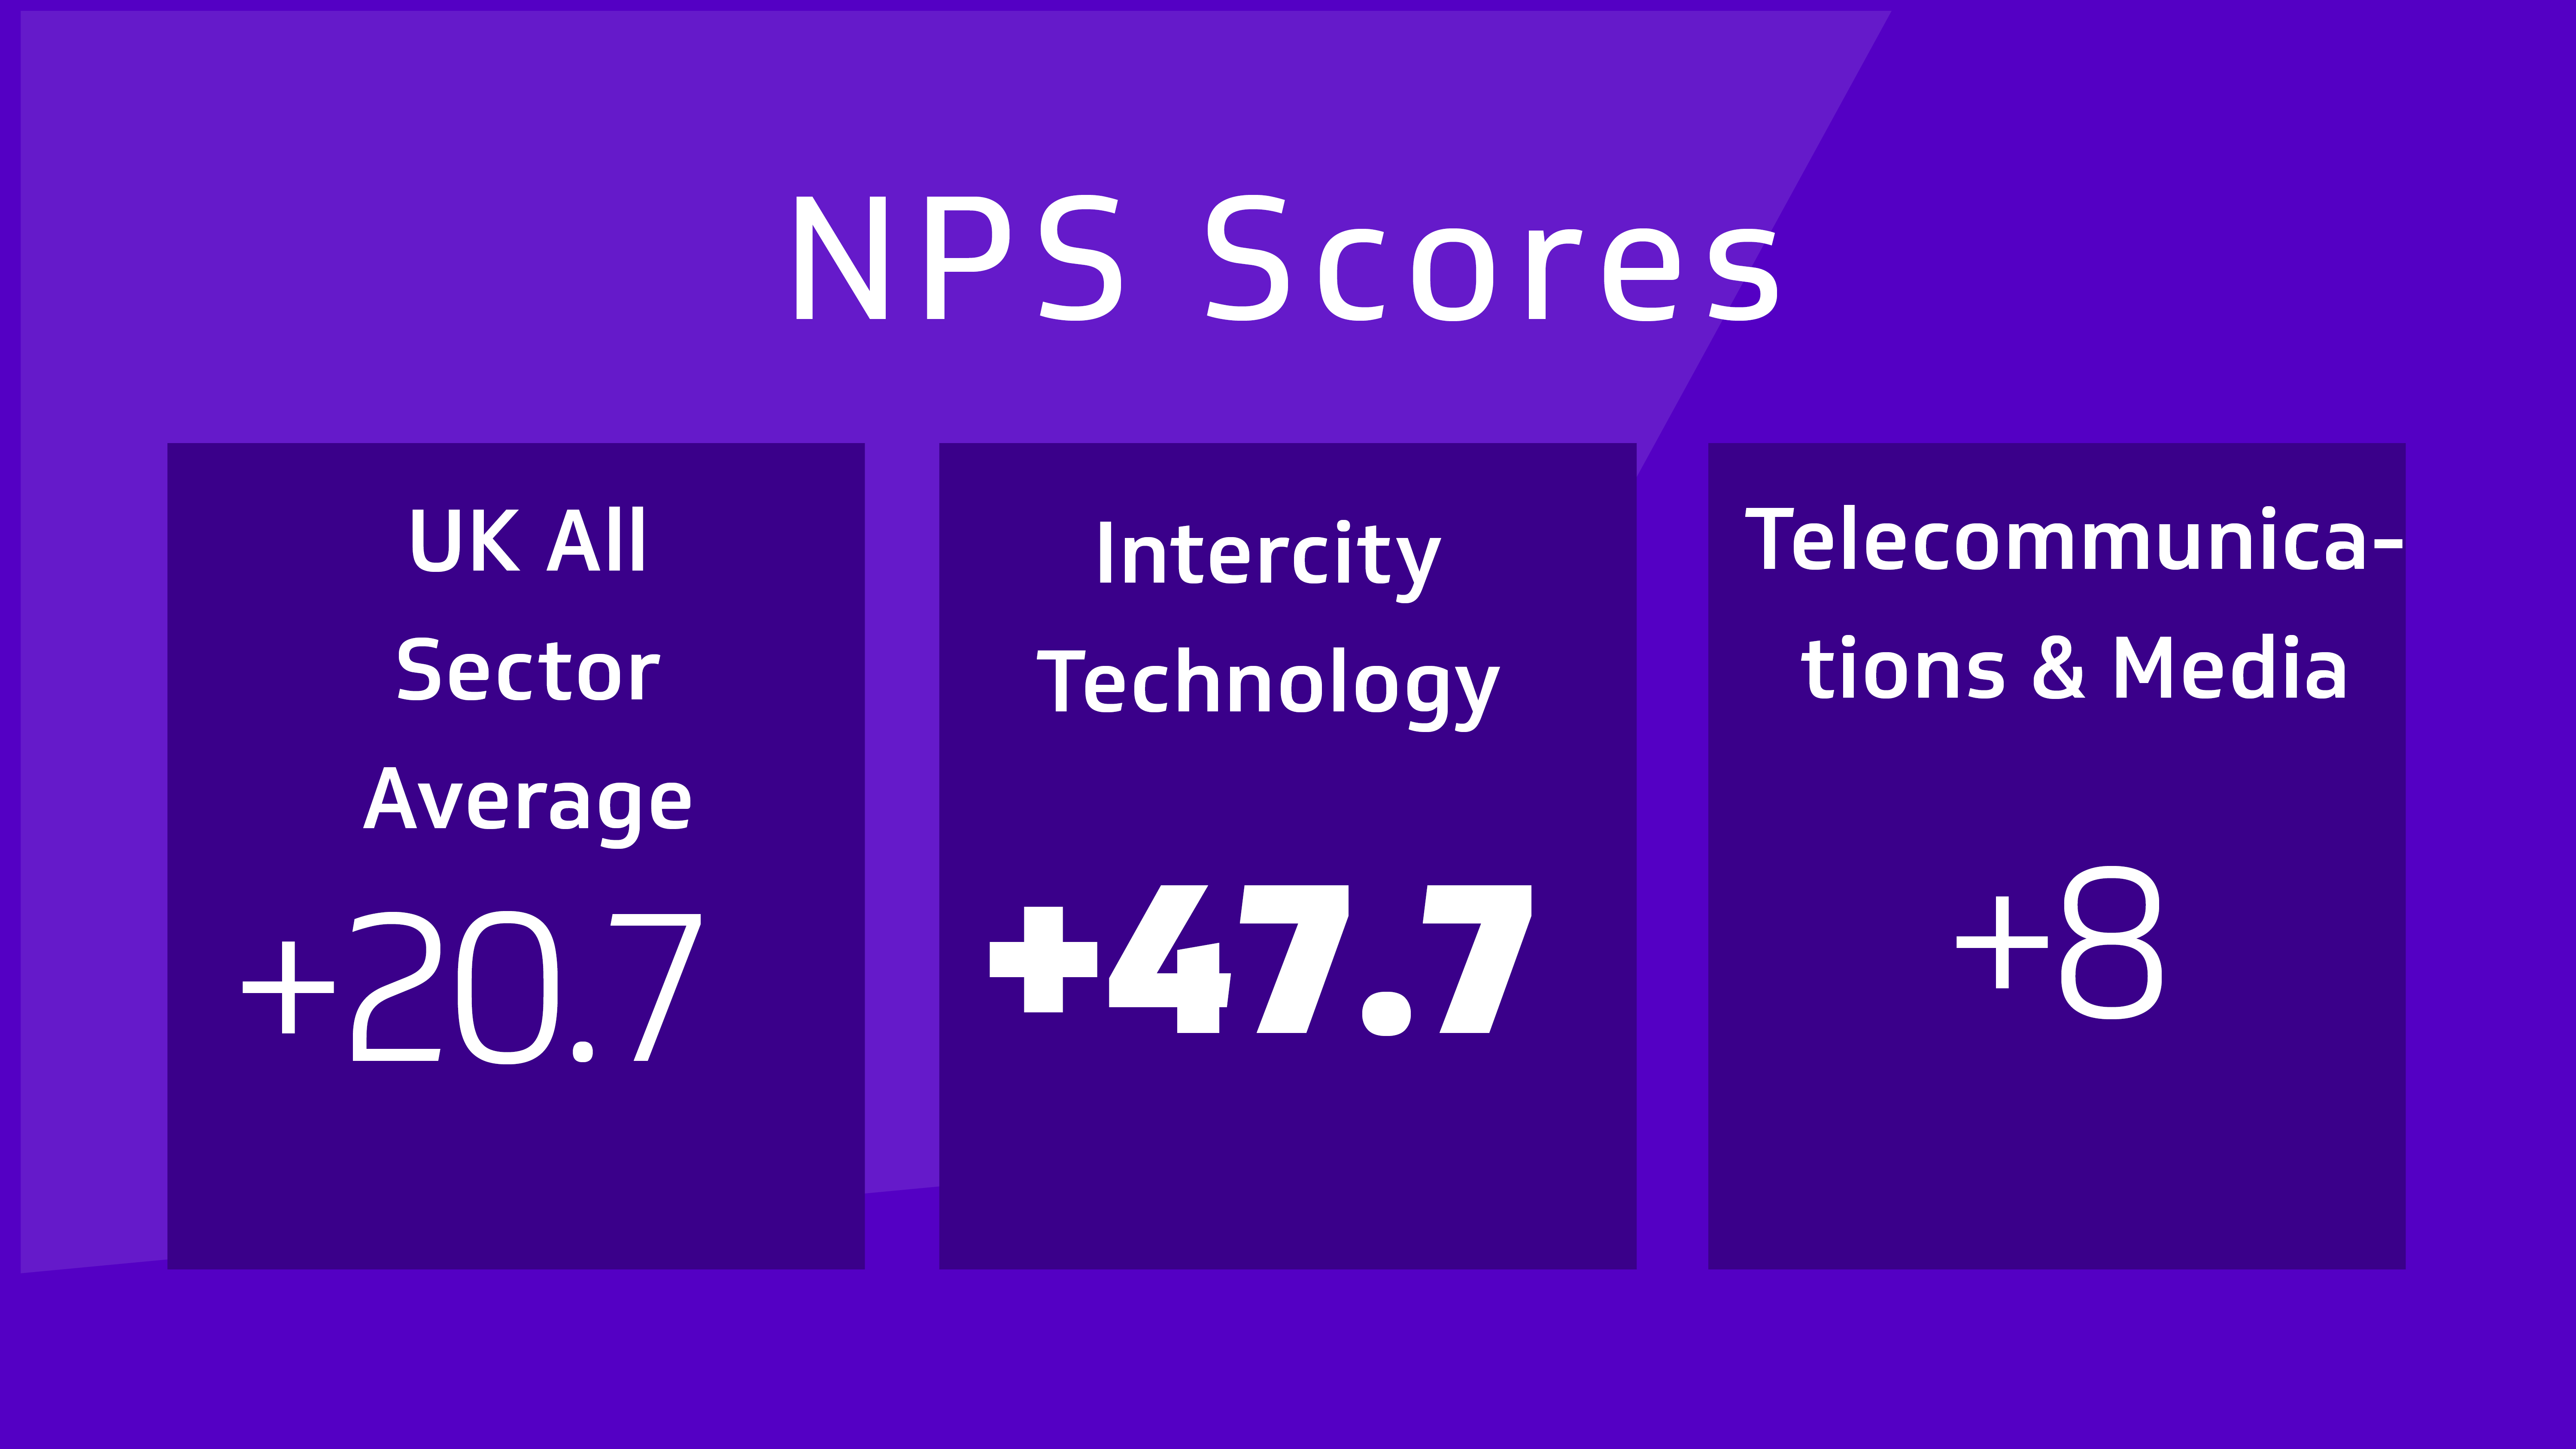 The Institute of Customer Services Results Are In!